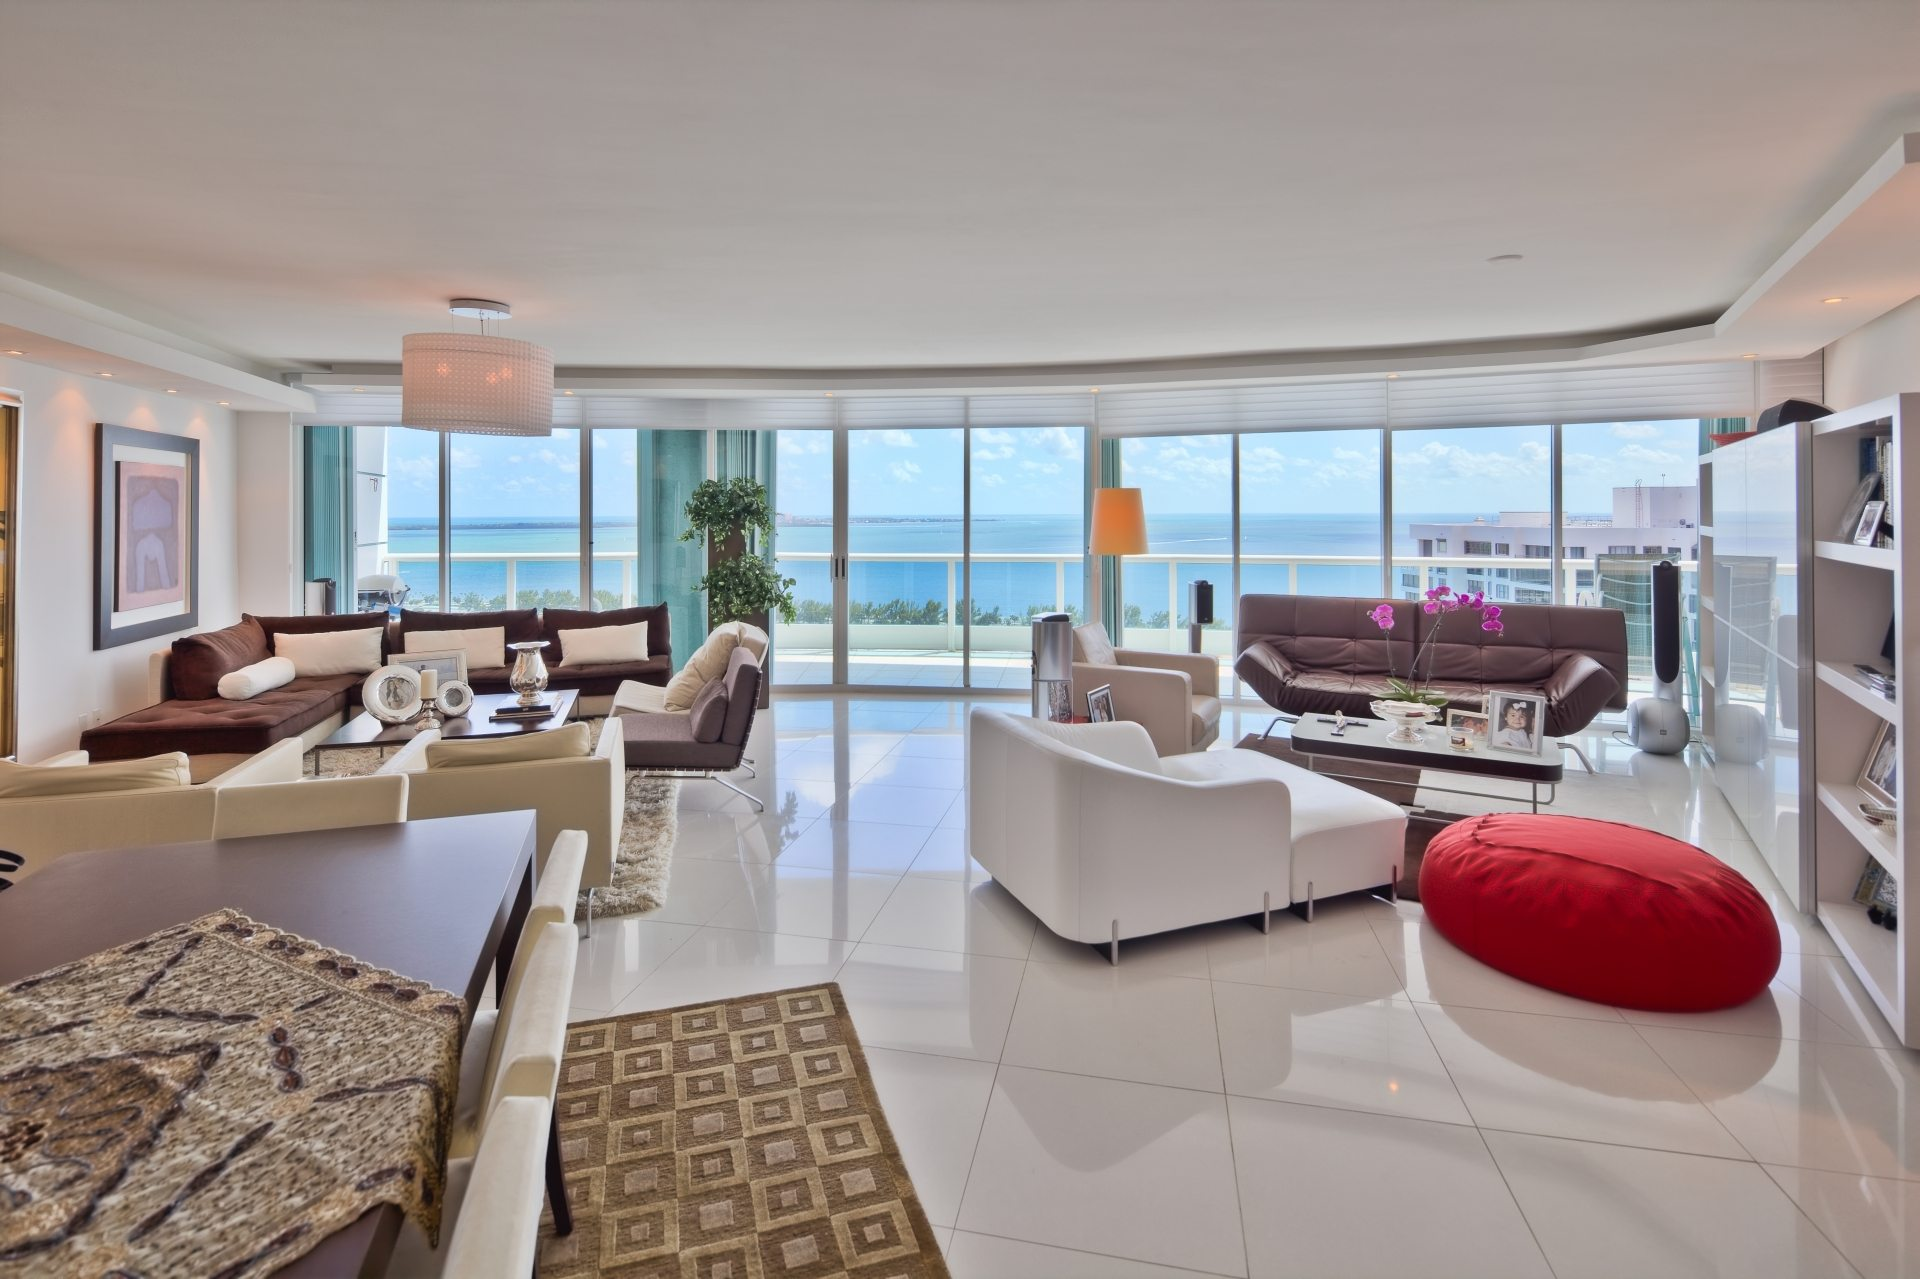 Best luxury 3 bedroom condo deal in brickell for Smdc 1 bedroom interior design